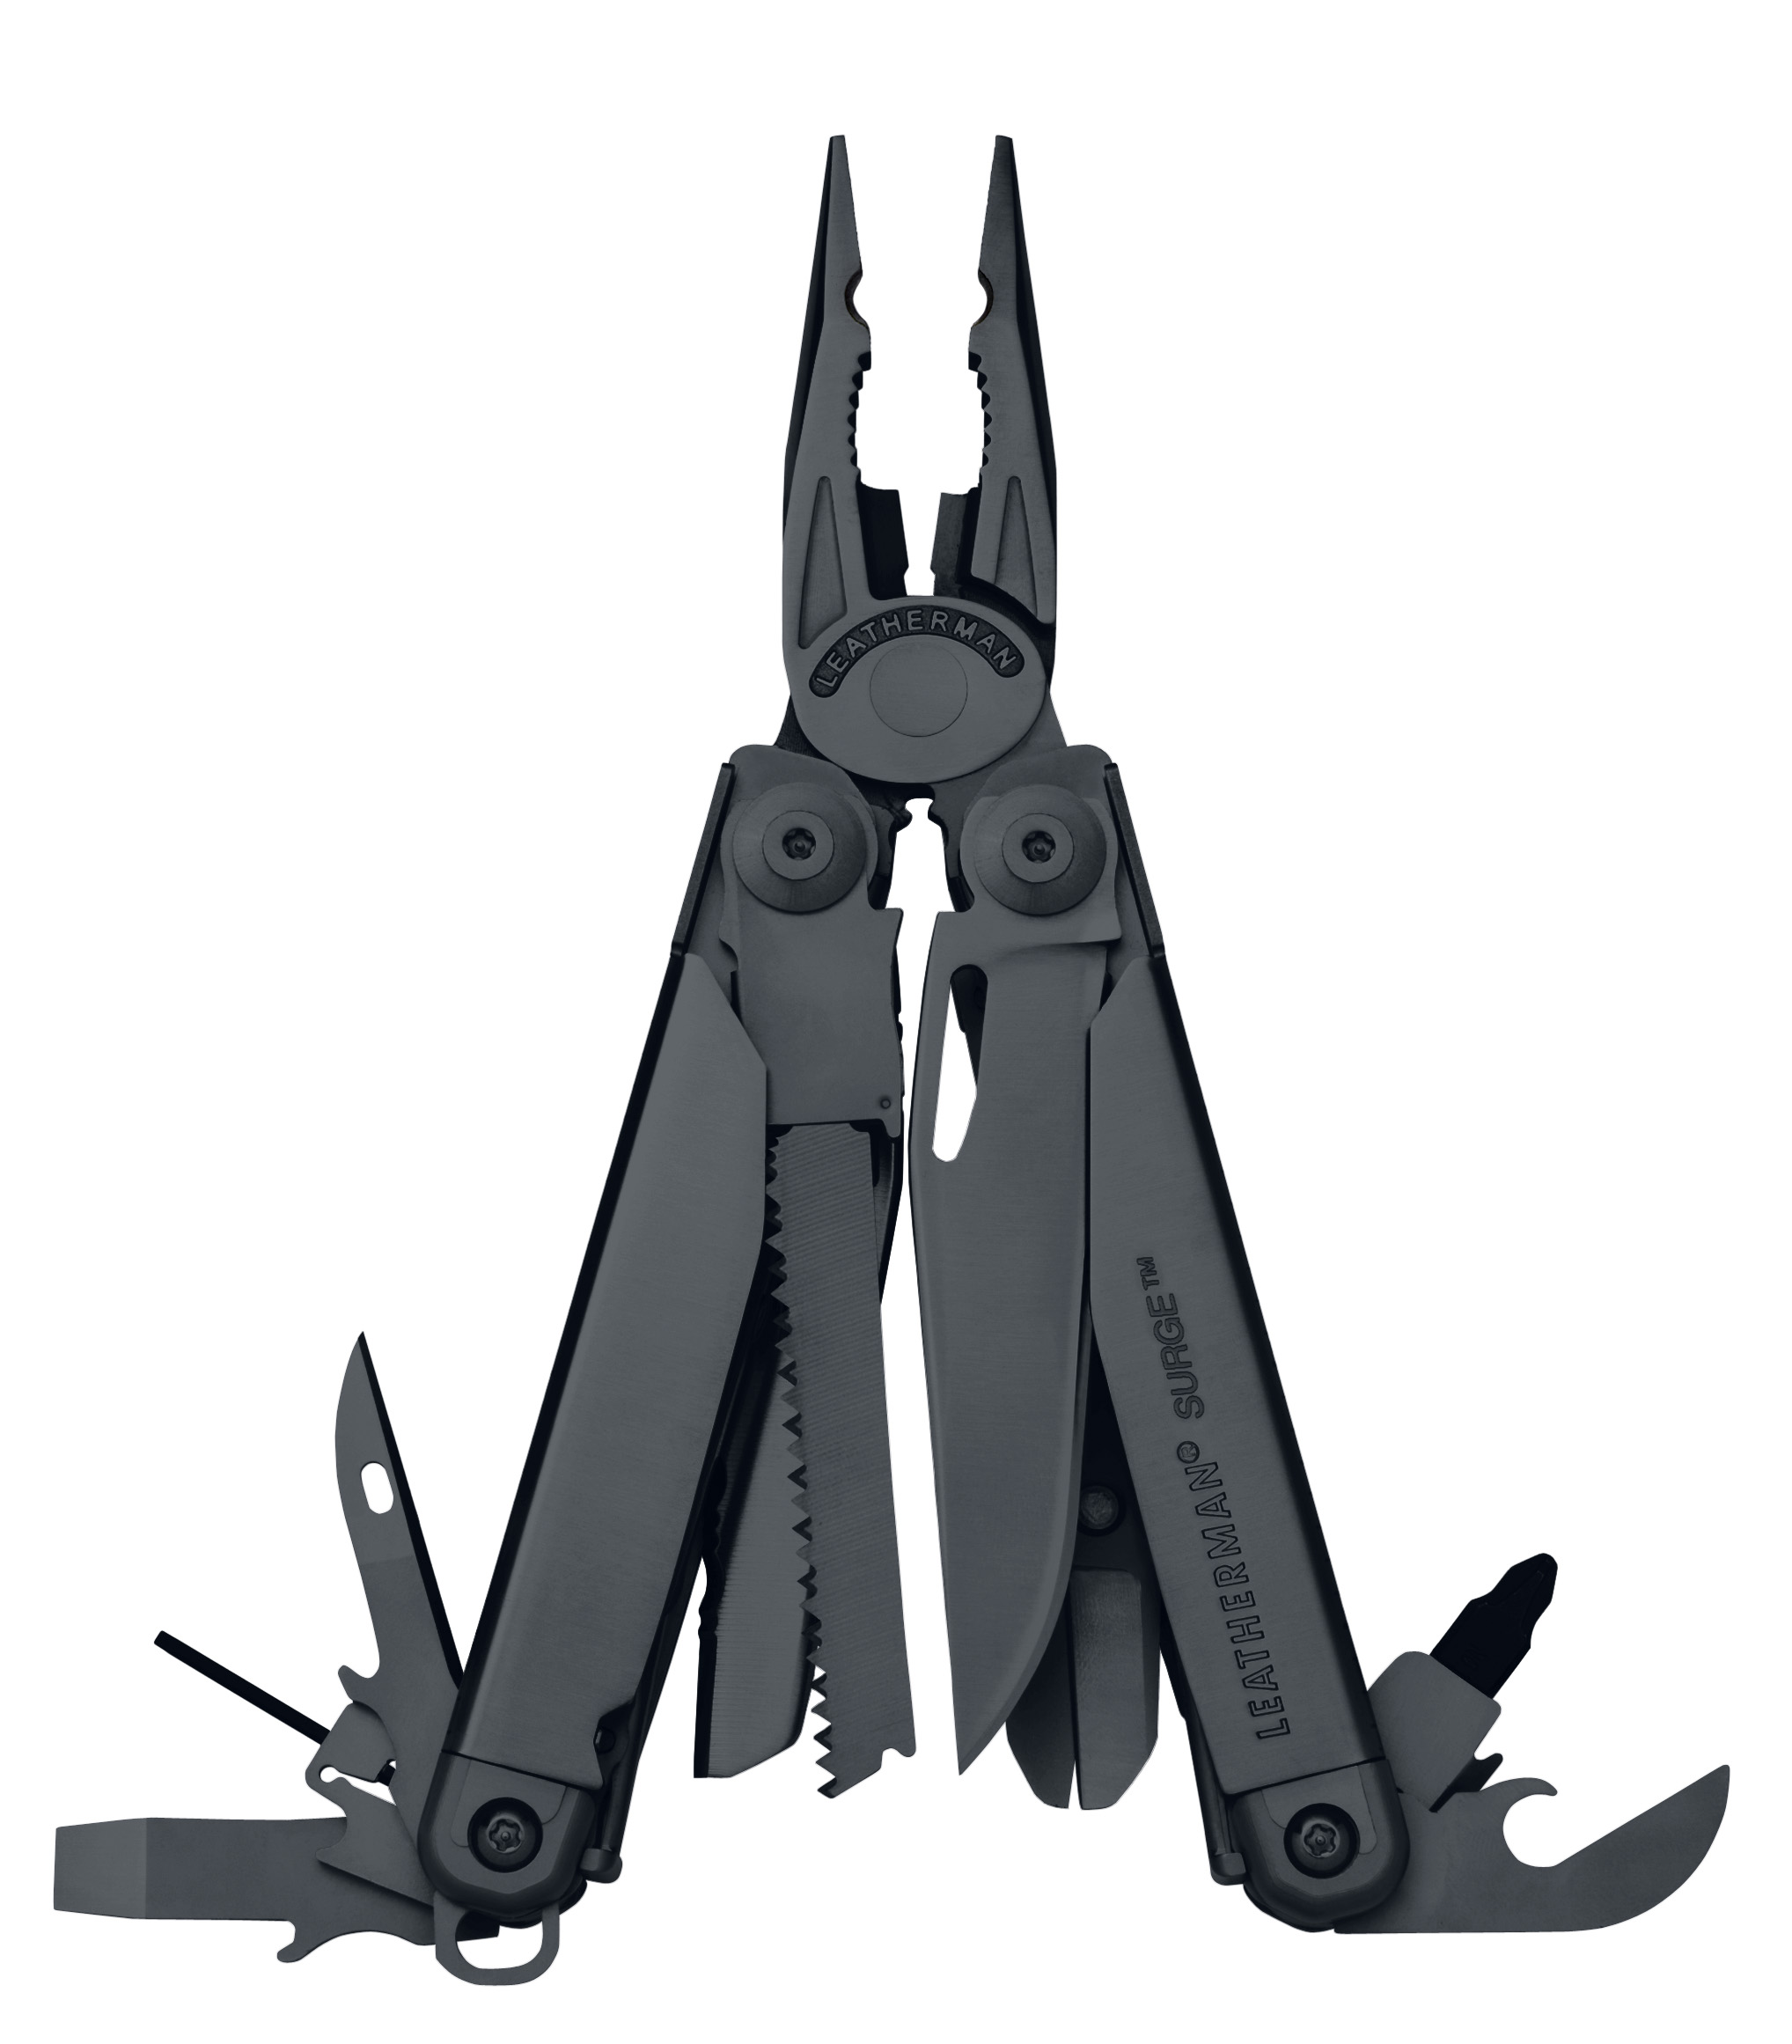 Leatherman Surge Black w/ Cap Crimper - Standard Sheath